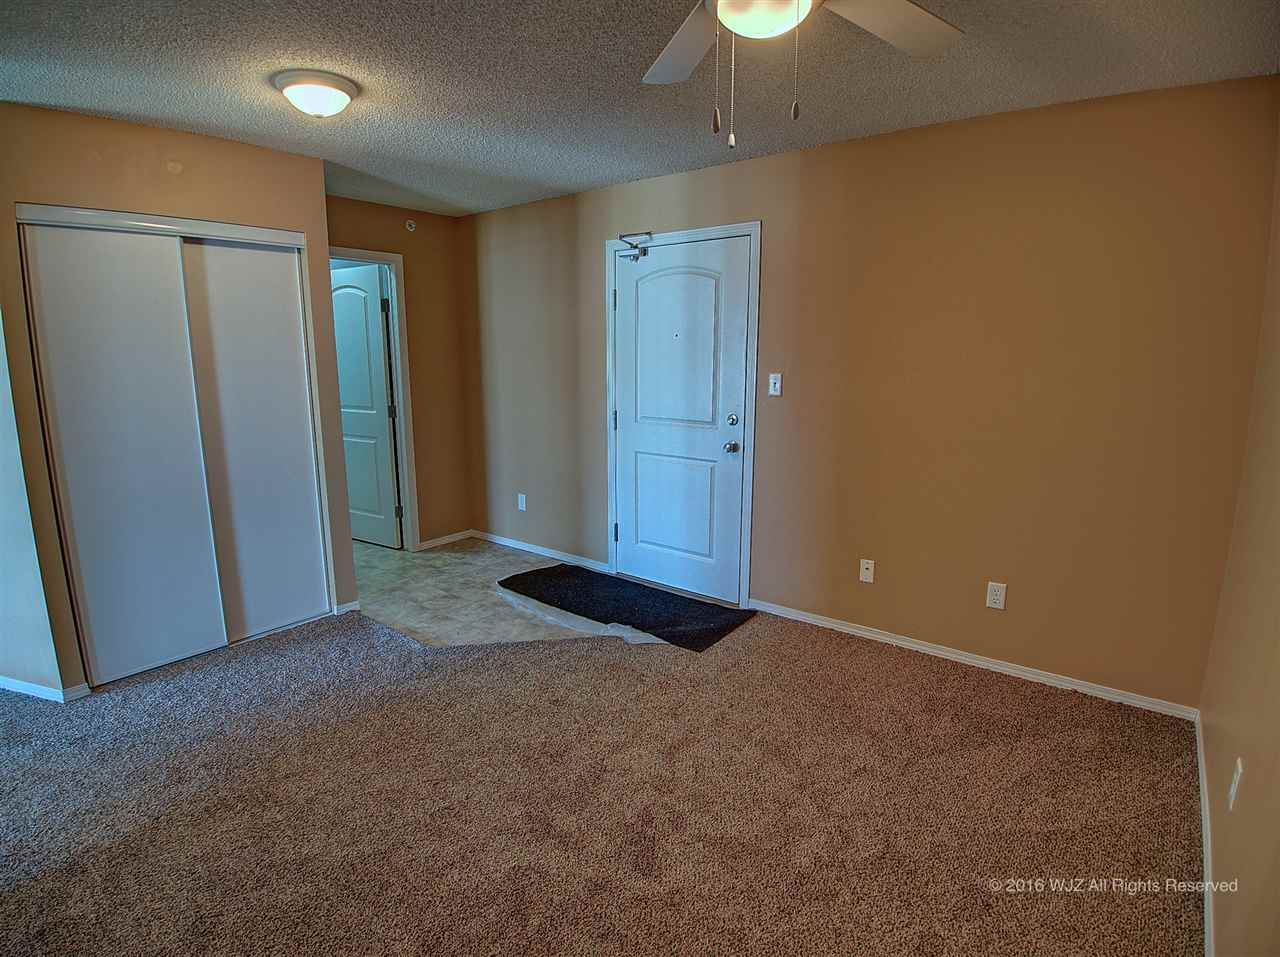 Photo 3: 423 70 woodsmere Close: Fort Saskatchewan Condo for sale : MLS(r) # E4031999